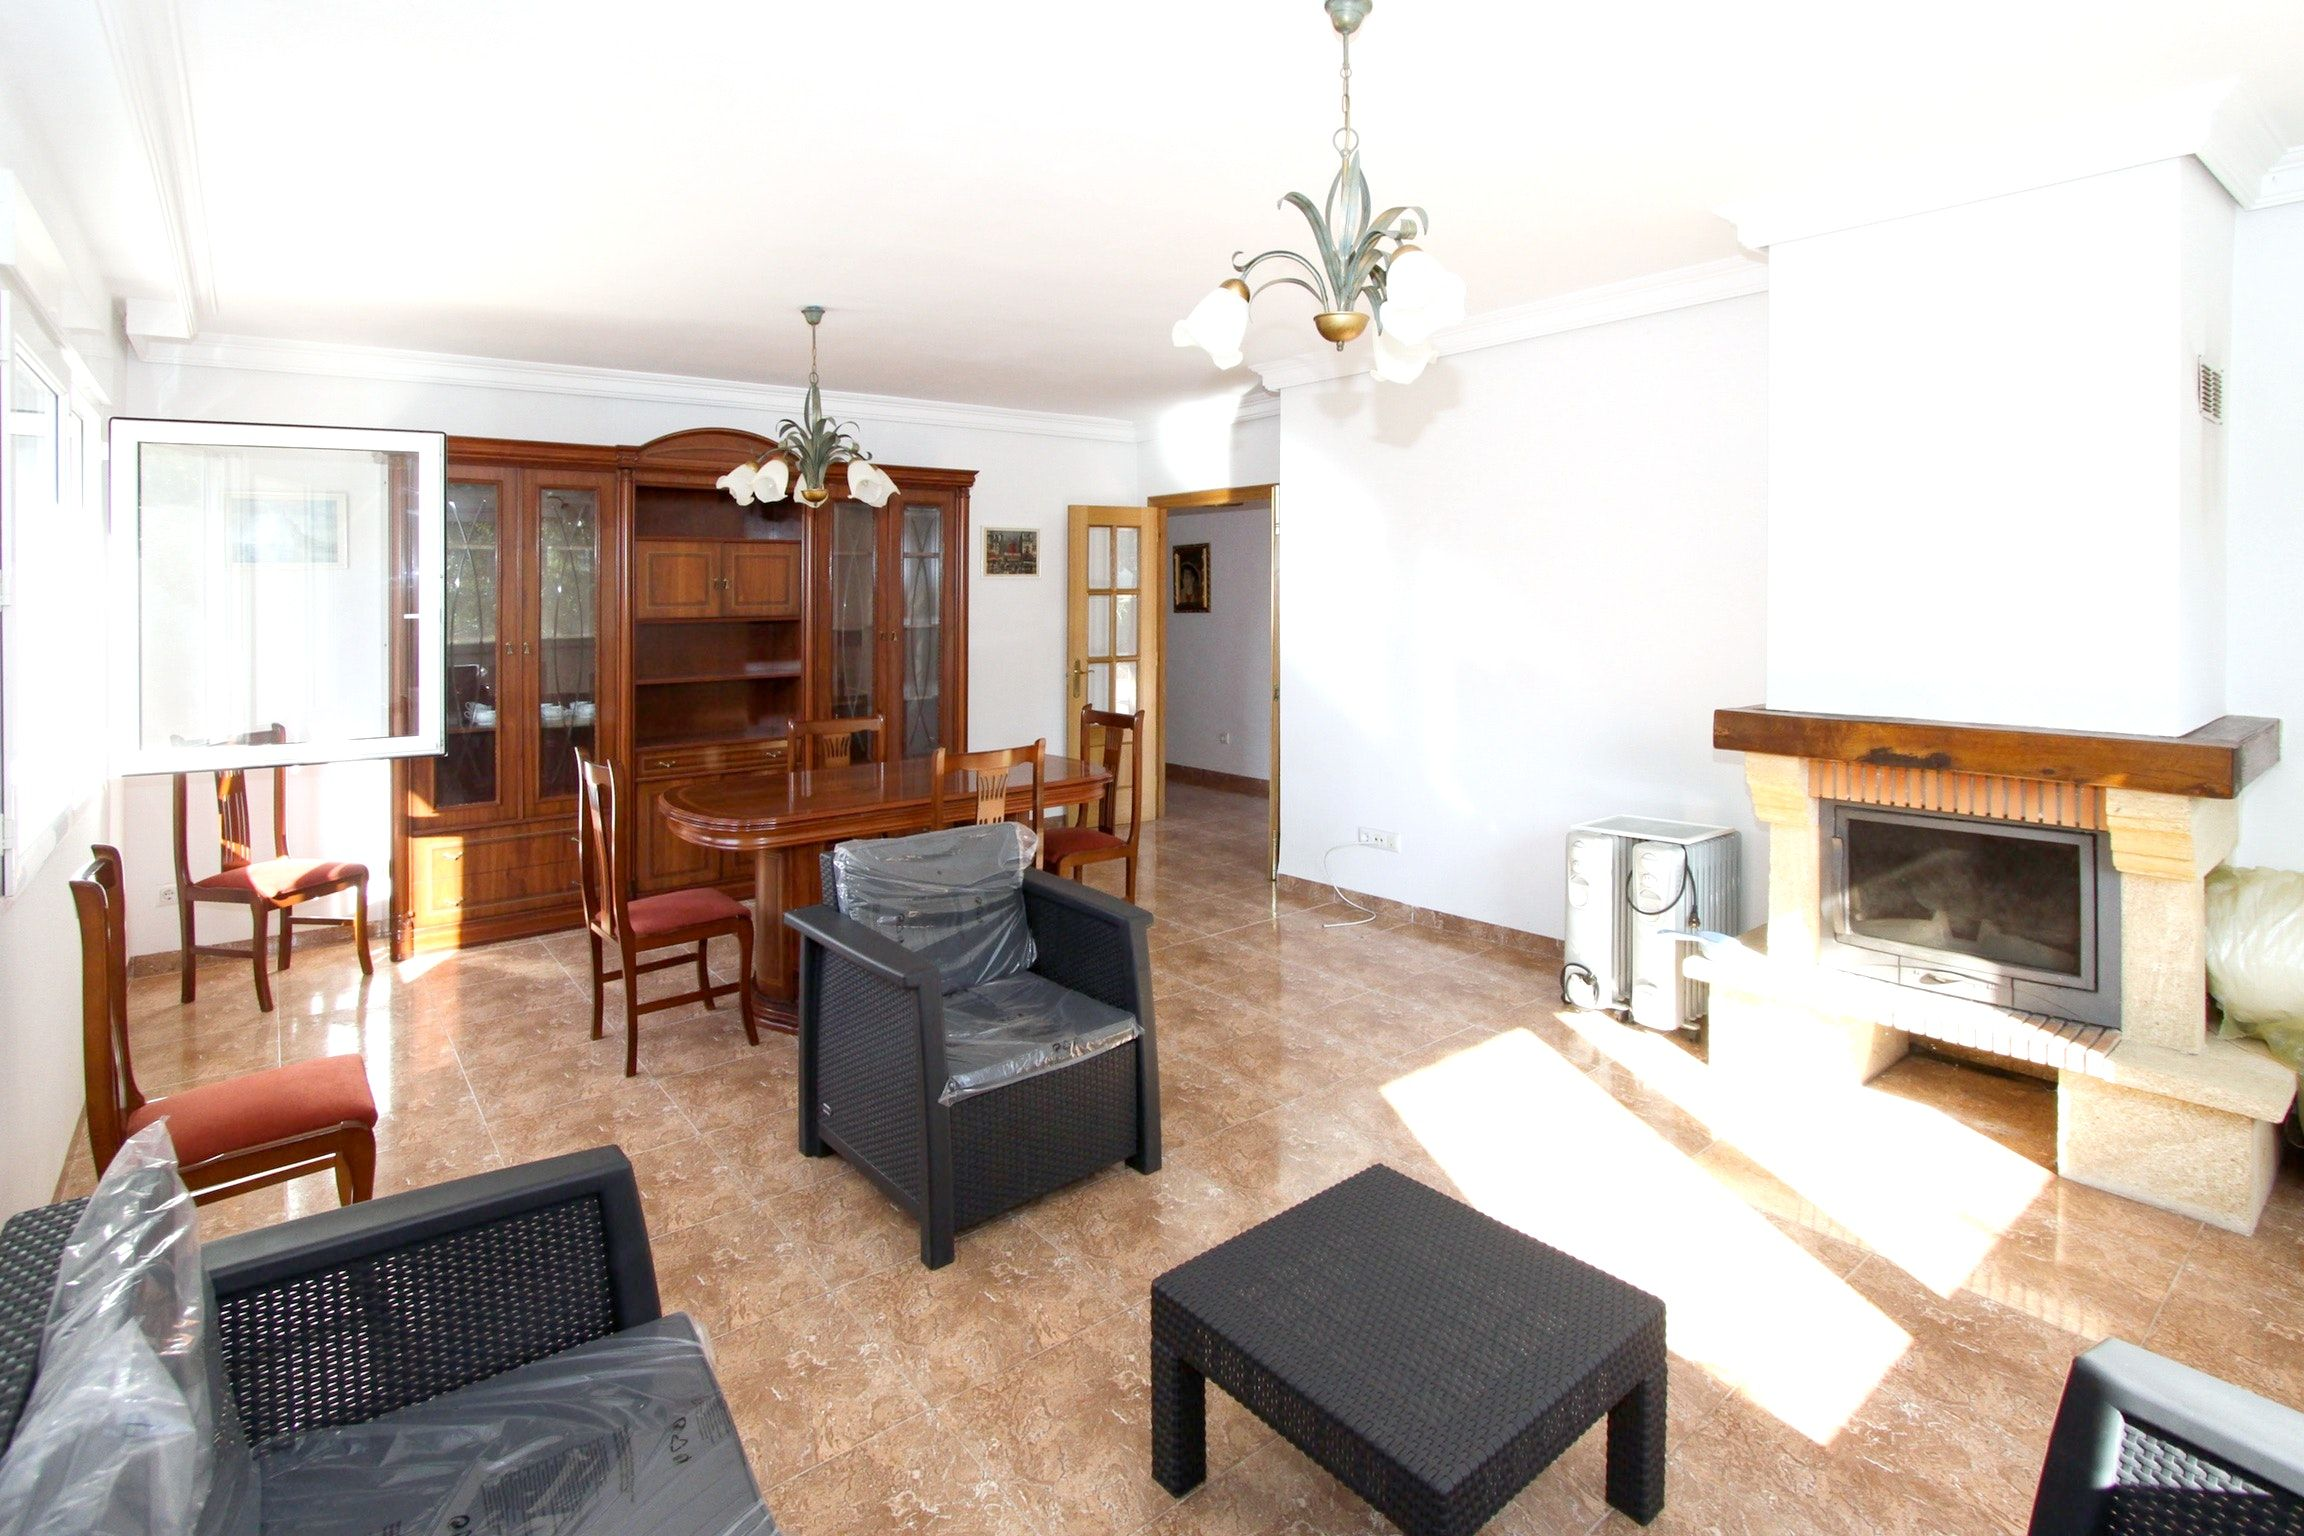 Traditional 3-bedroom villa near Castellón with a furnished terrace - close to the beach!